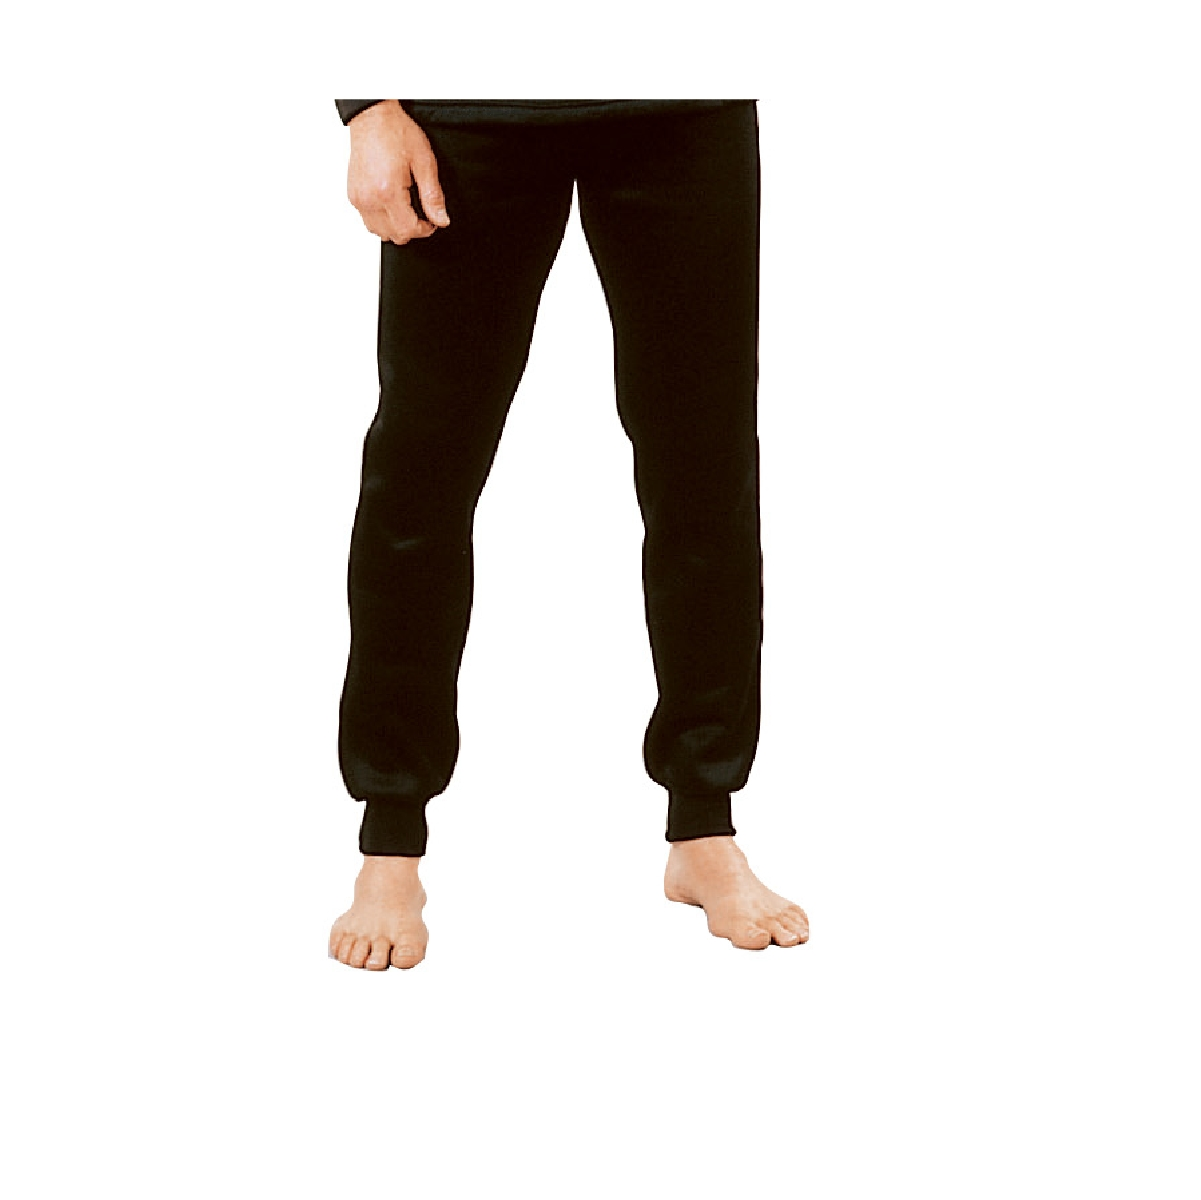 ECWCS Polypro Thermal Long Underwear Pants by Rothco